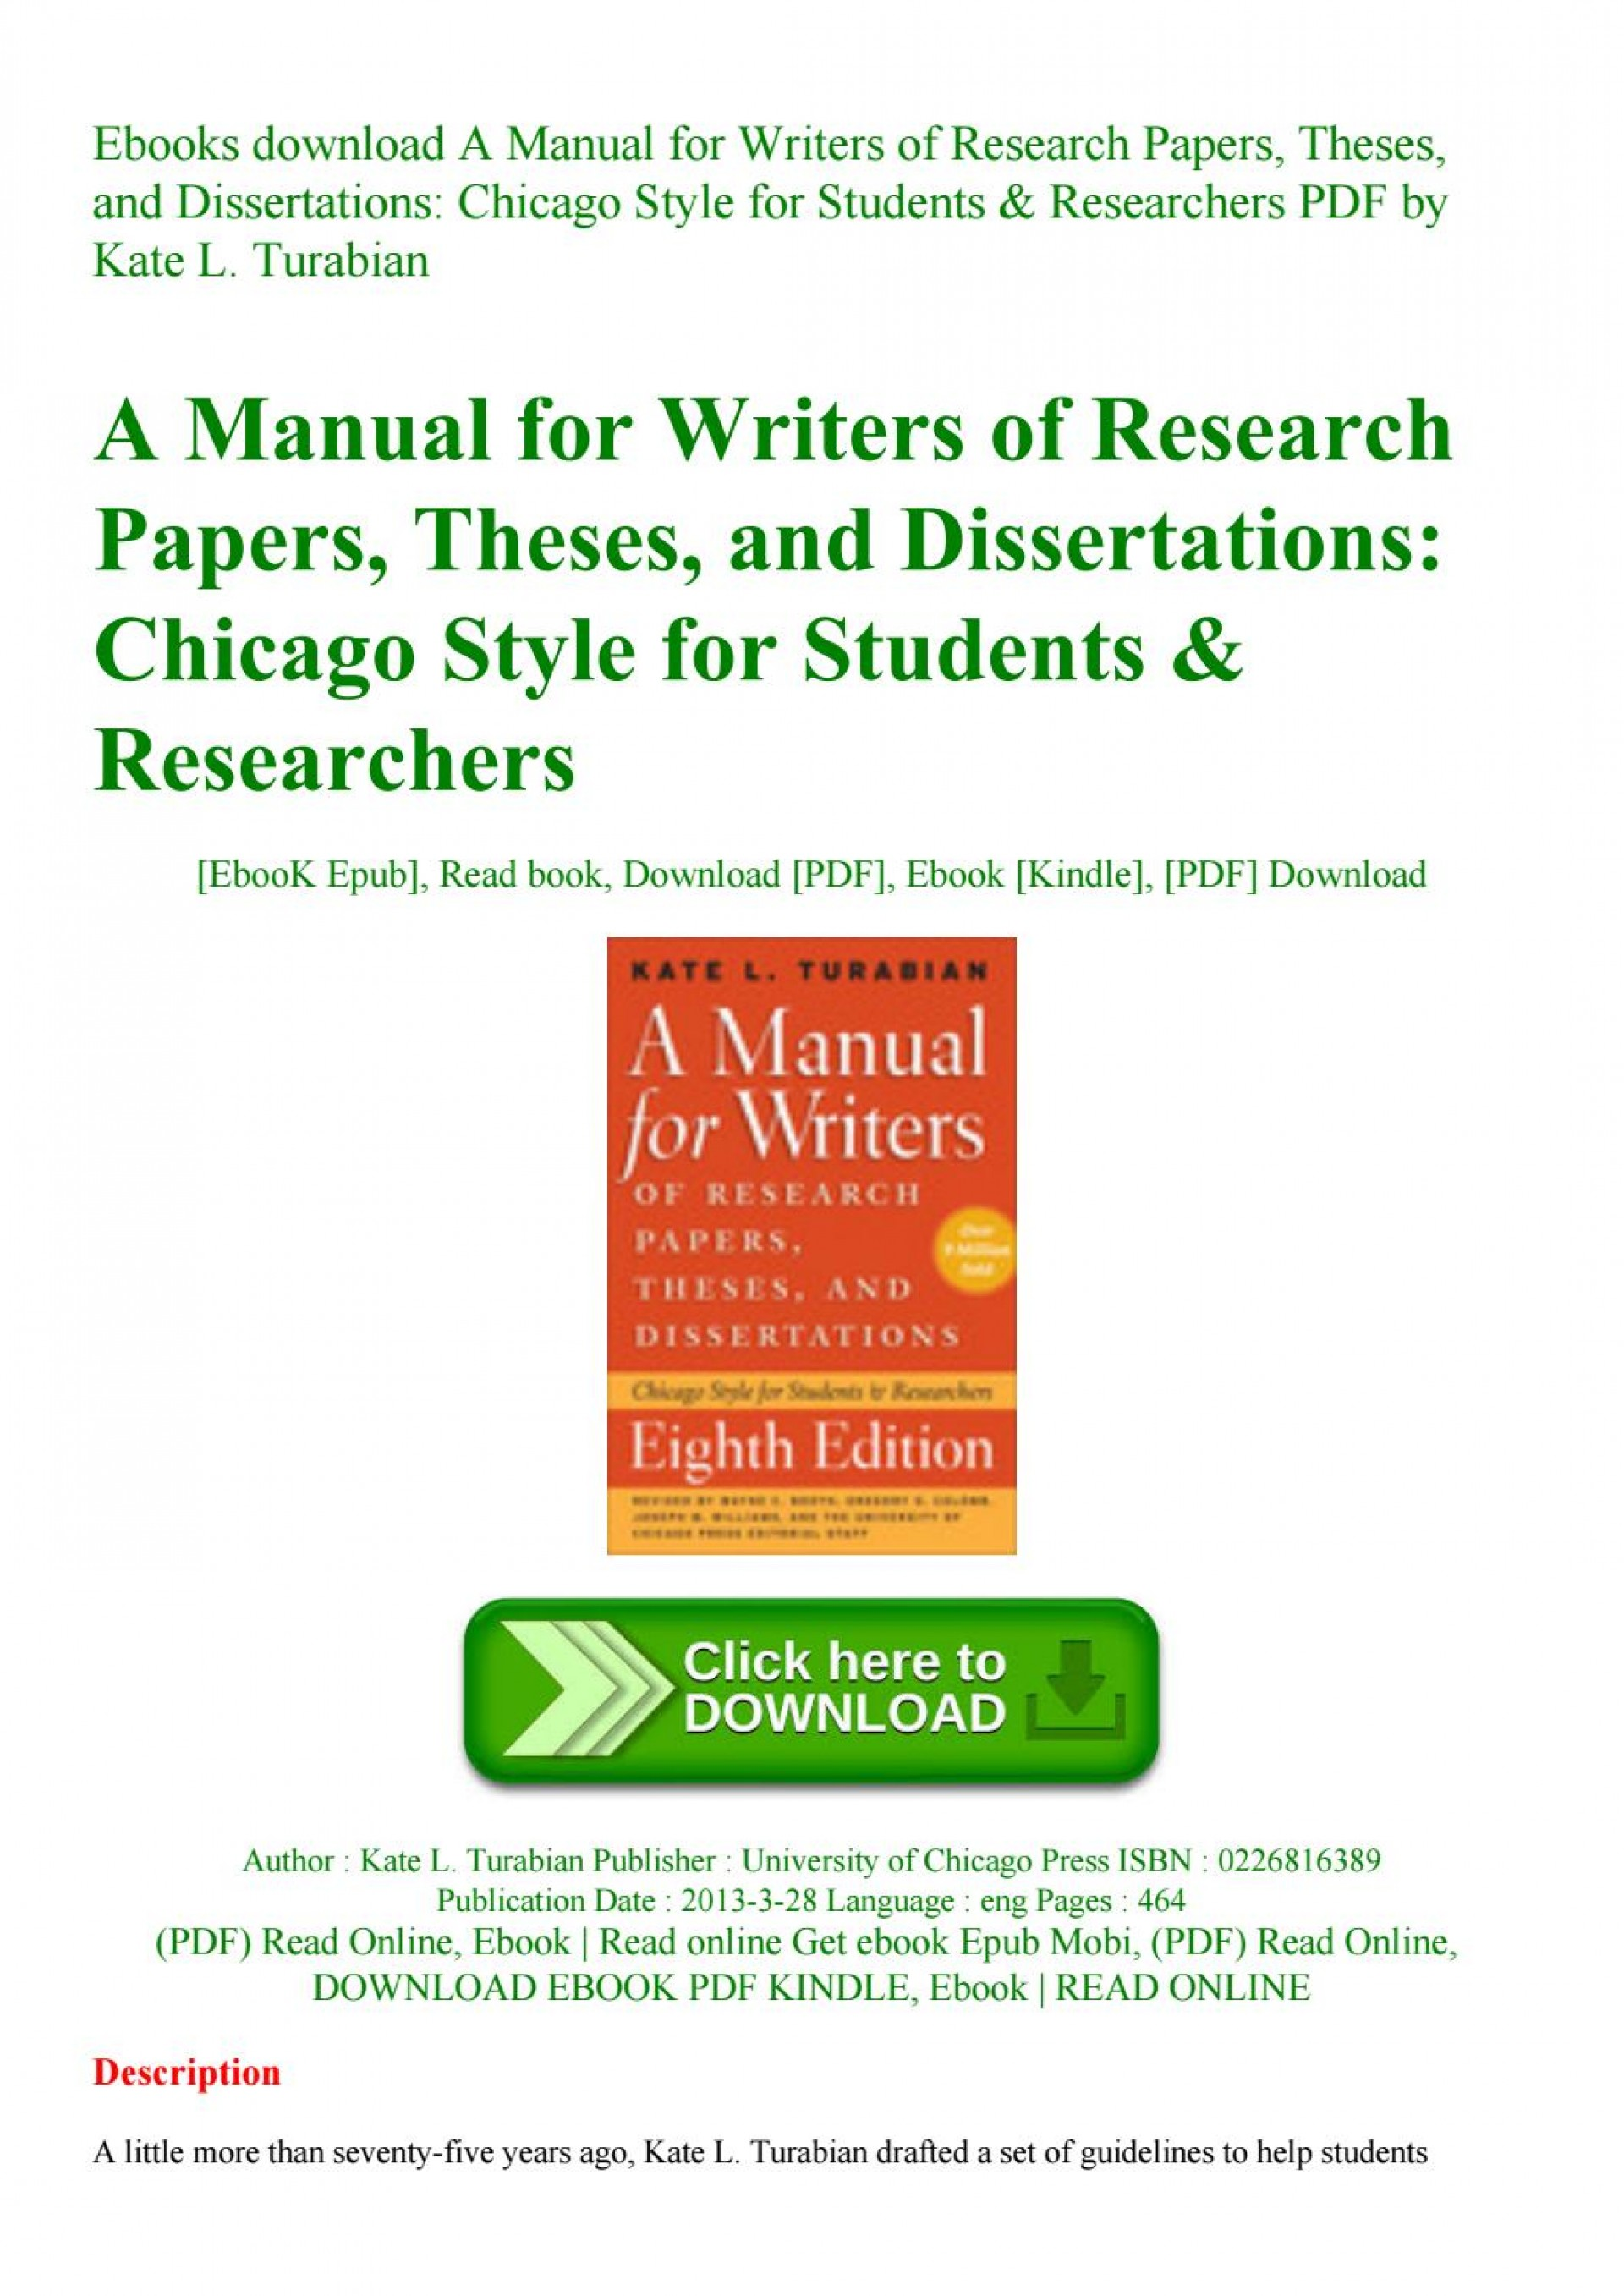 019 Research Paper Manual For Writers Of Papers Theses And Dissertations Page 1 Fearsome A Ed 8 1920